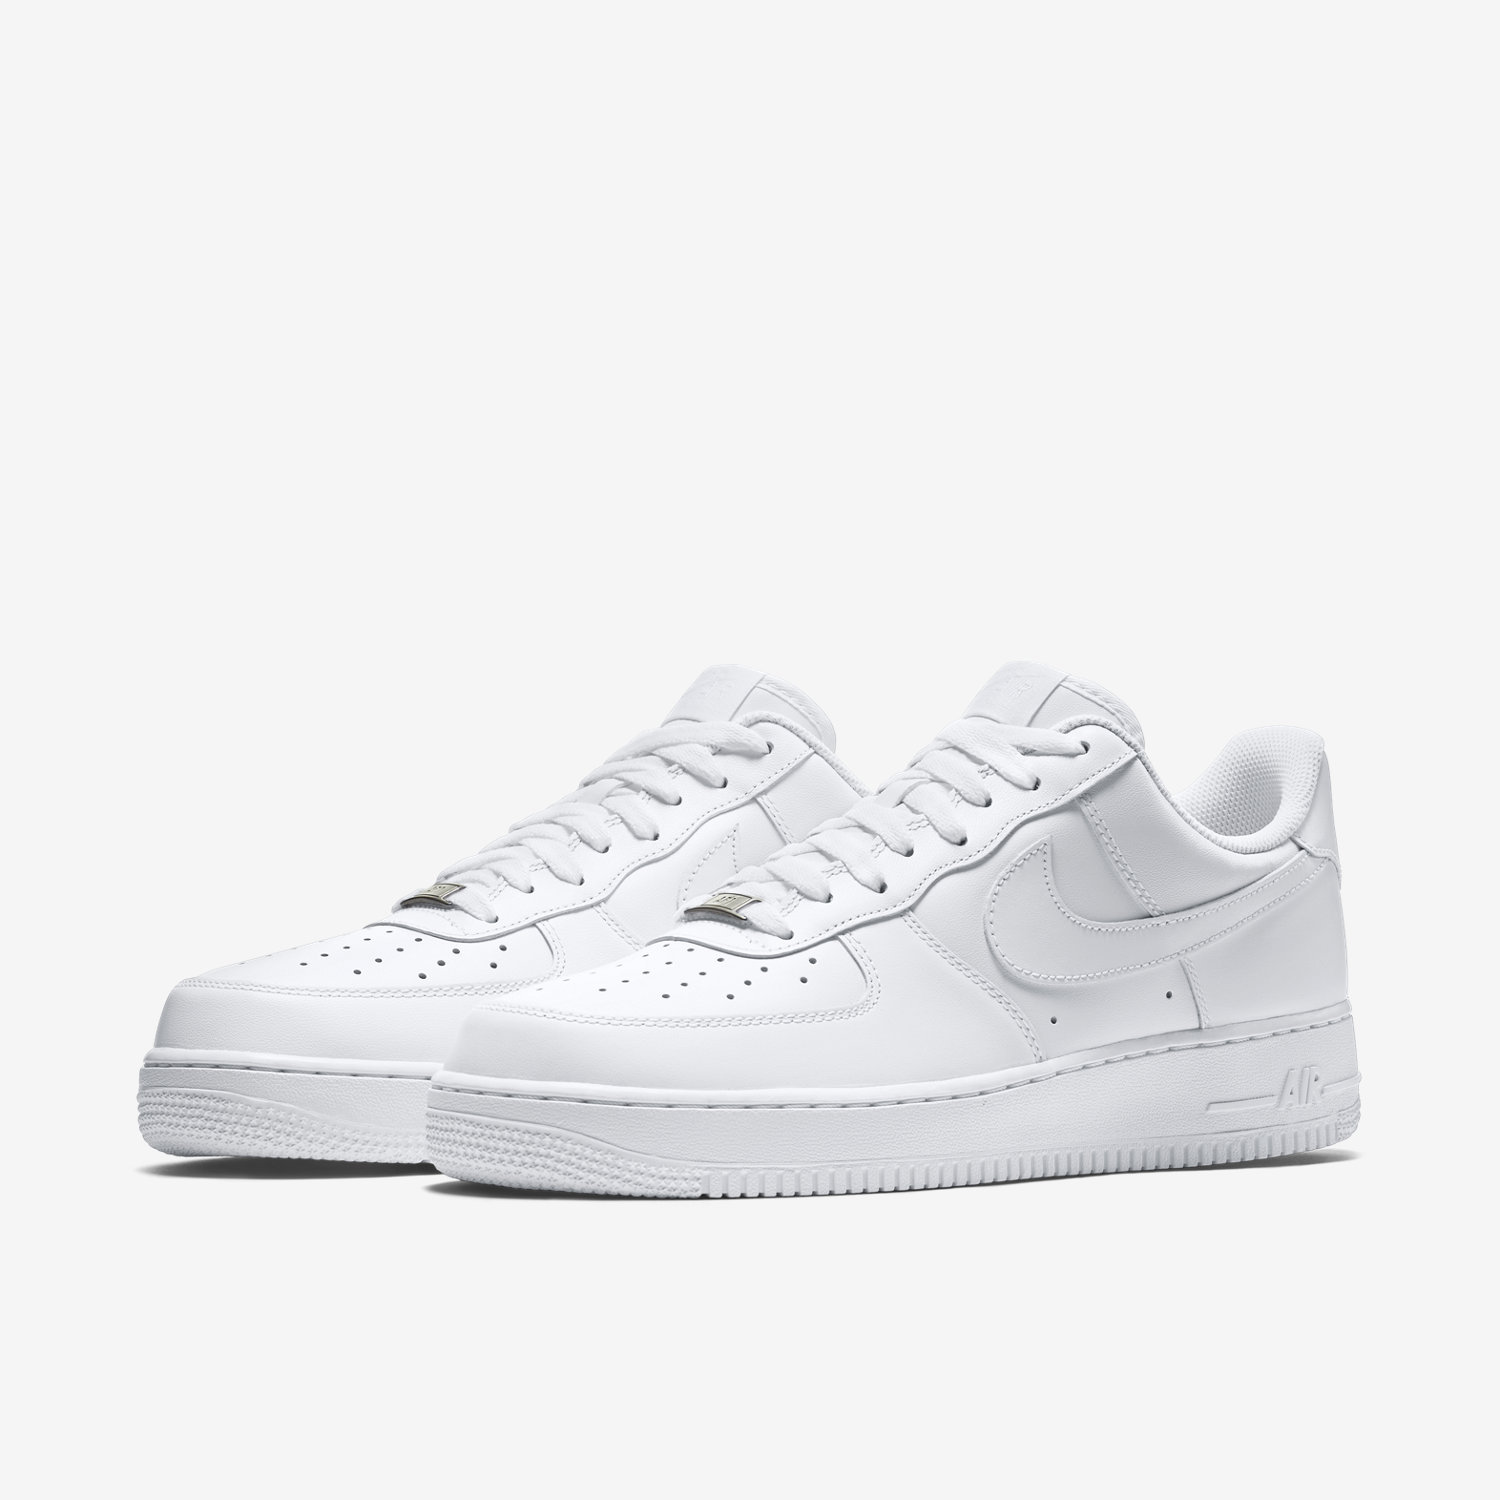 nike-air-force-1-07-shoe.jpg